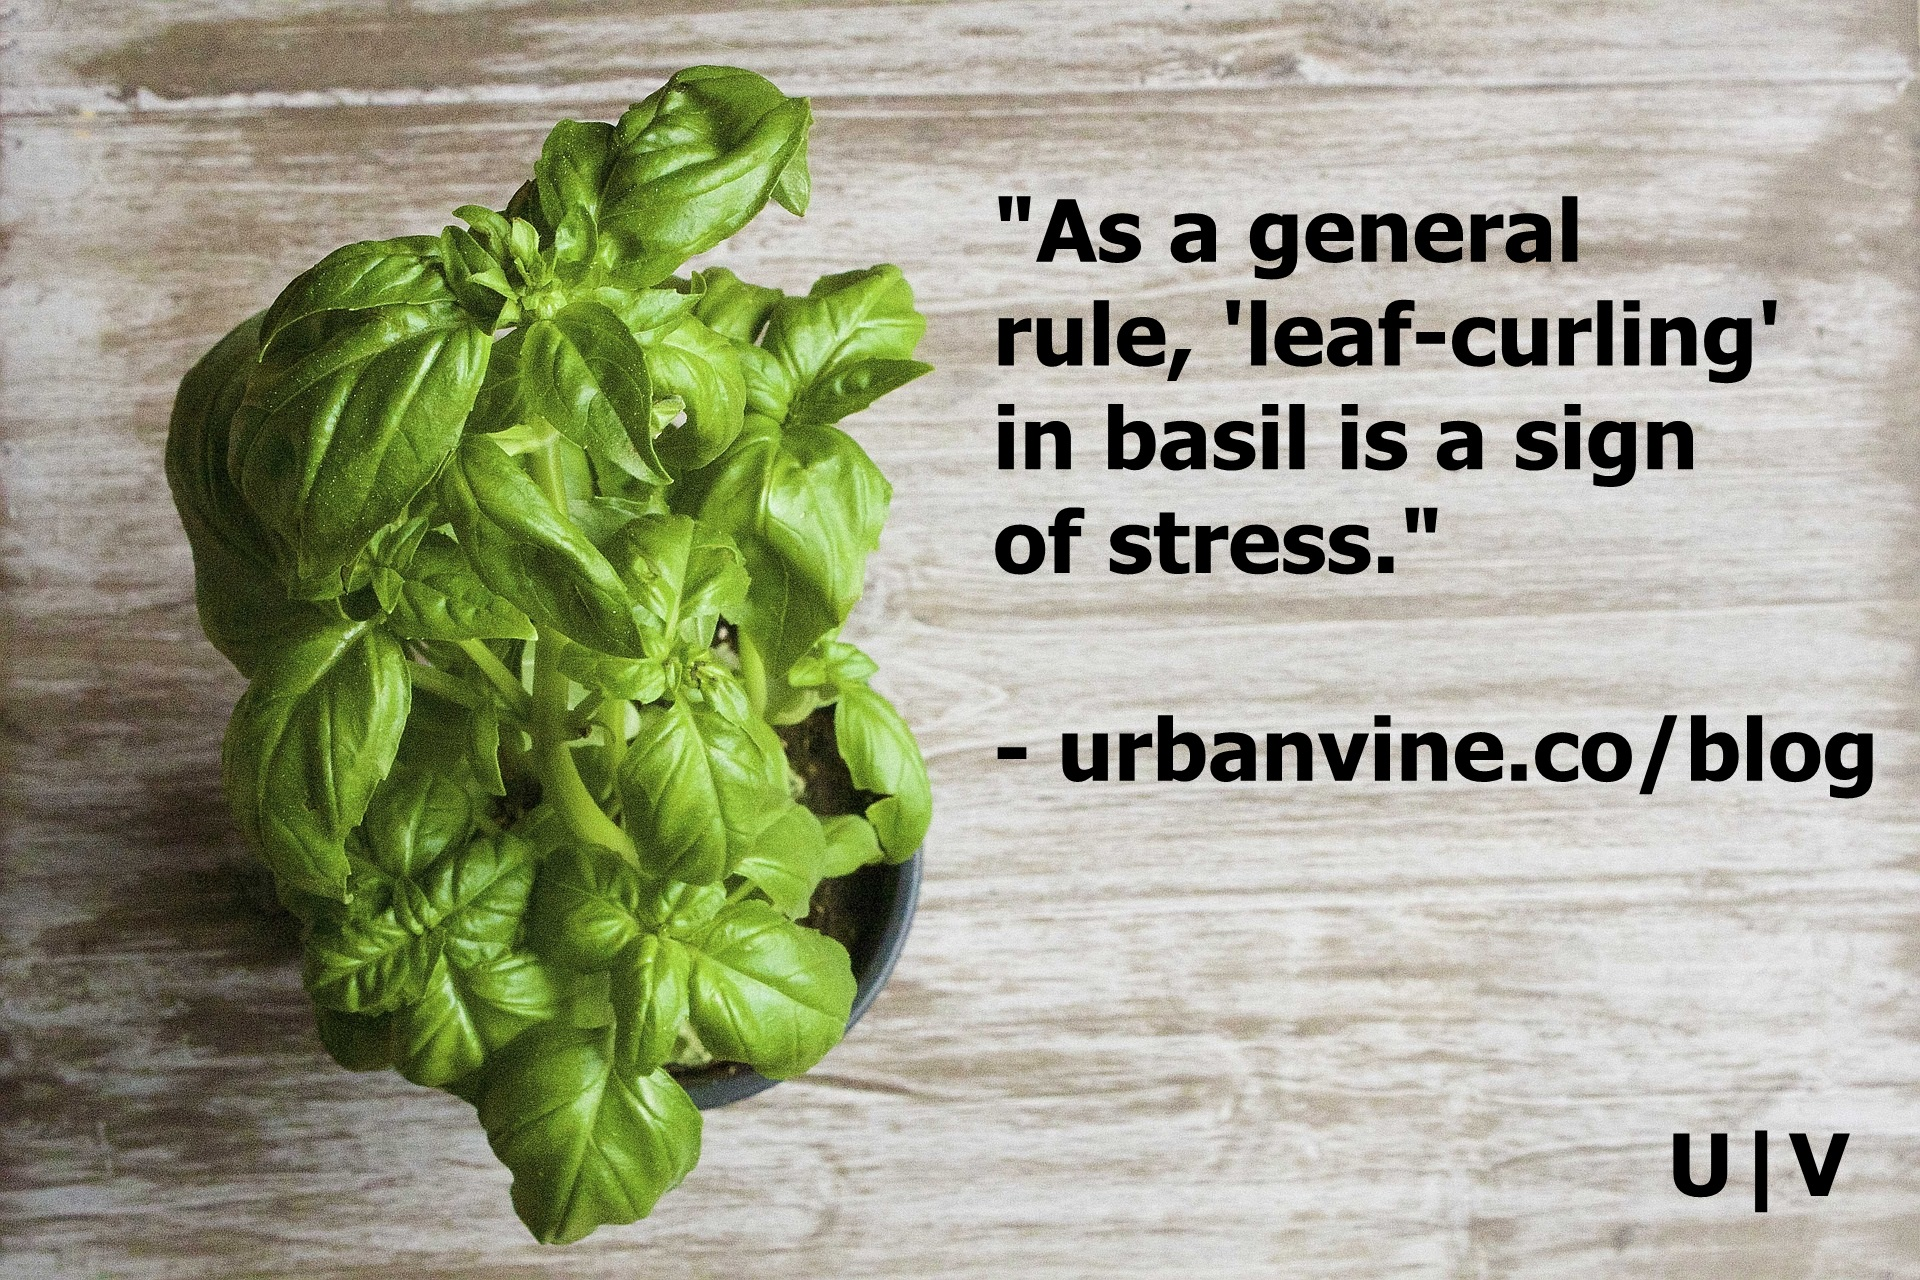 Leaf curling is a sign of stress in basil, which often times is triggered by overheating.